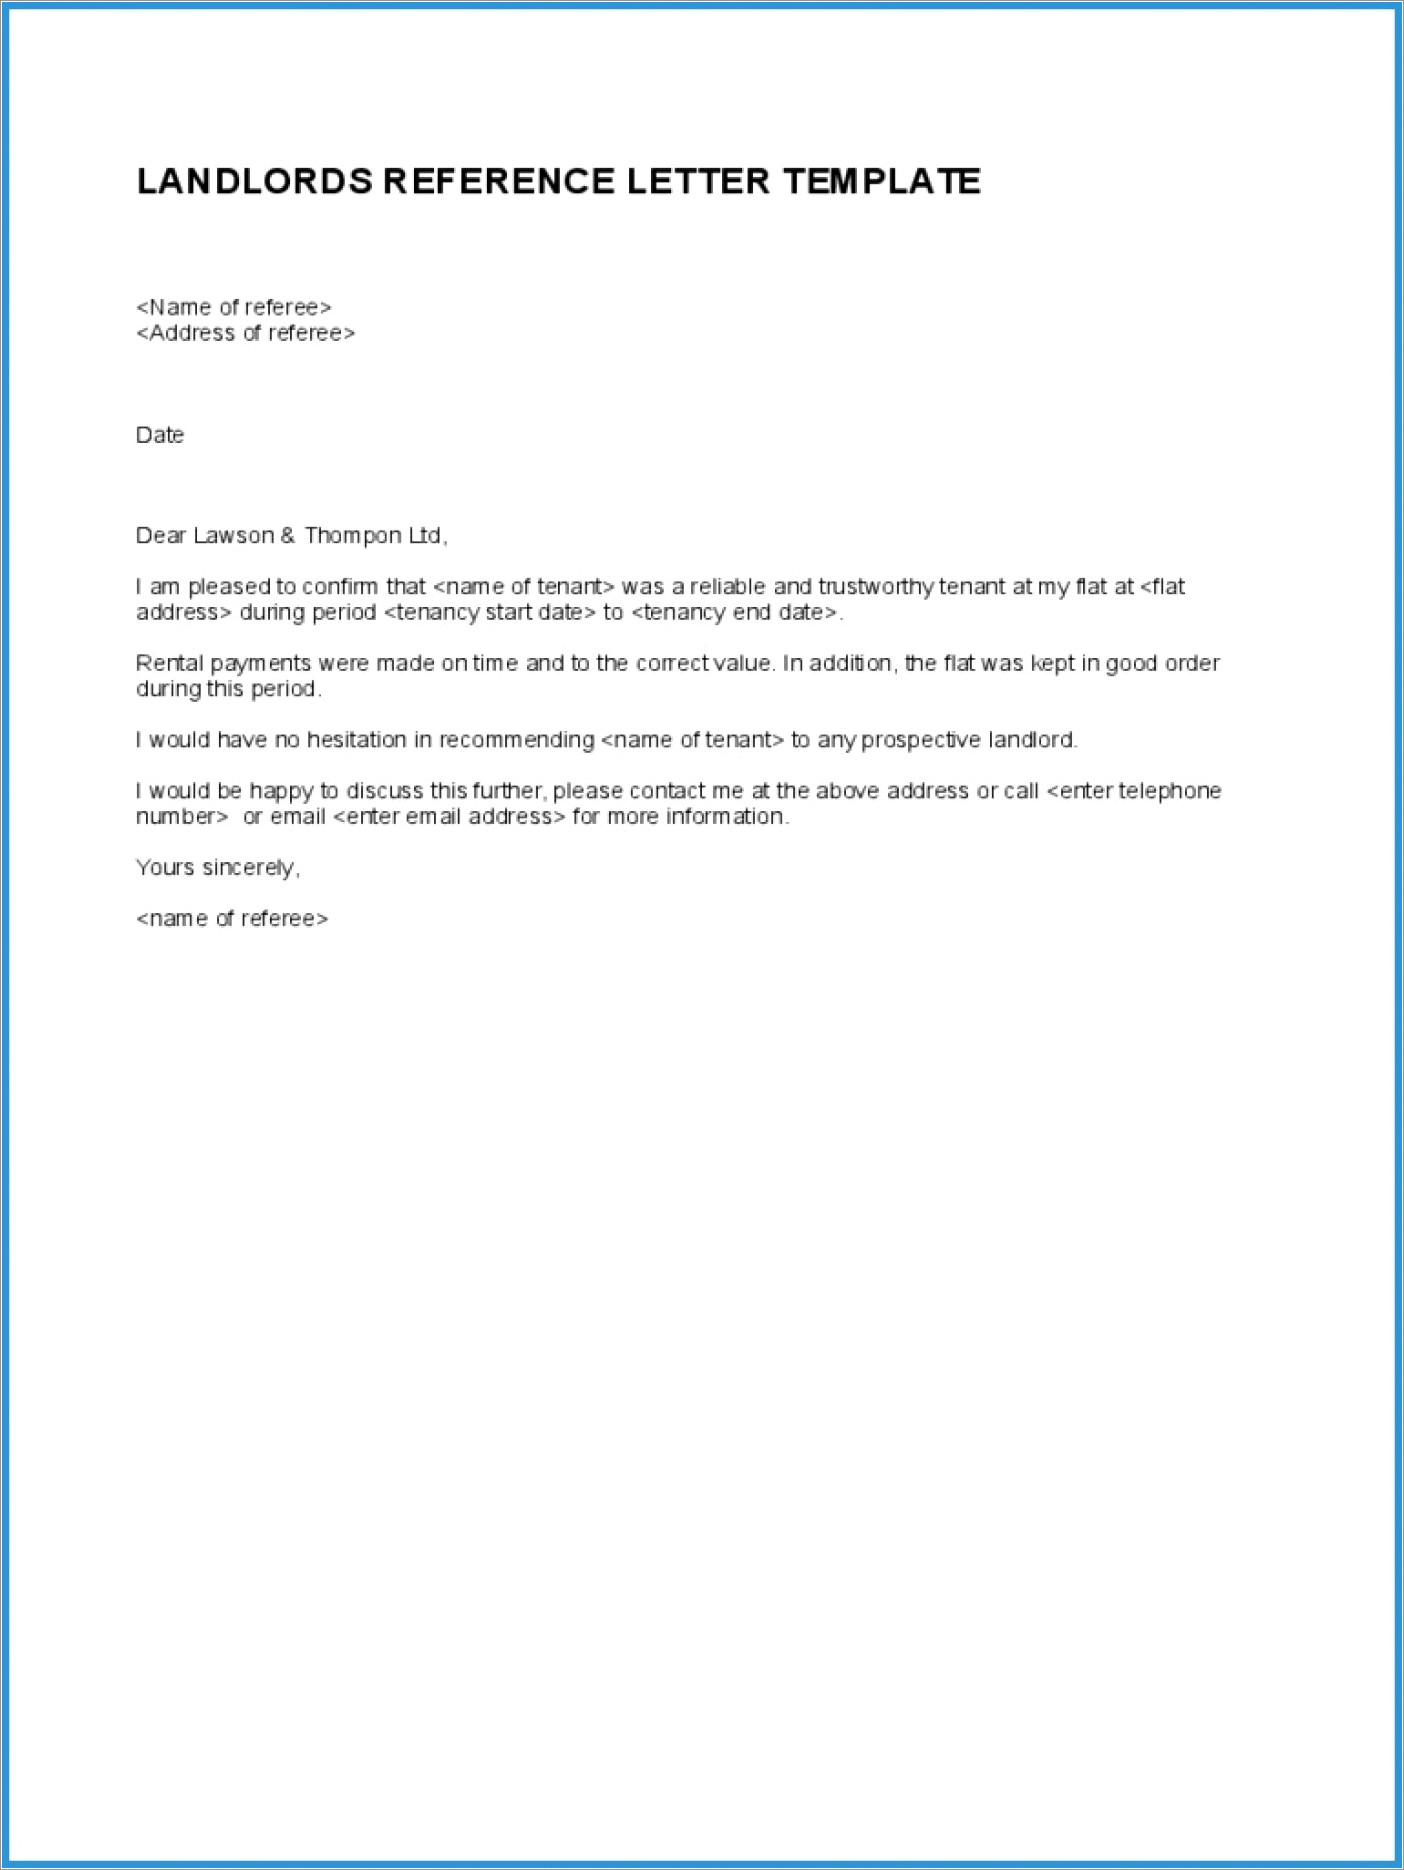 Landlord Tenant Reference Letter Template